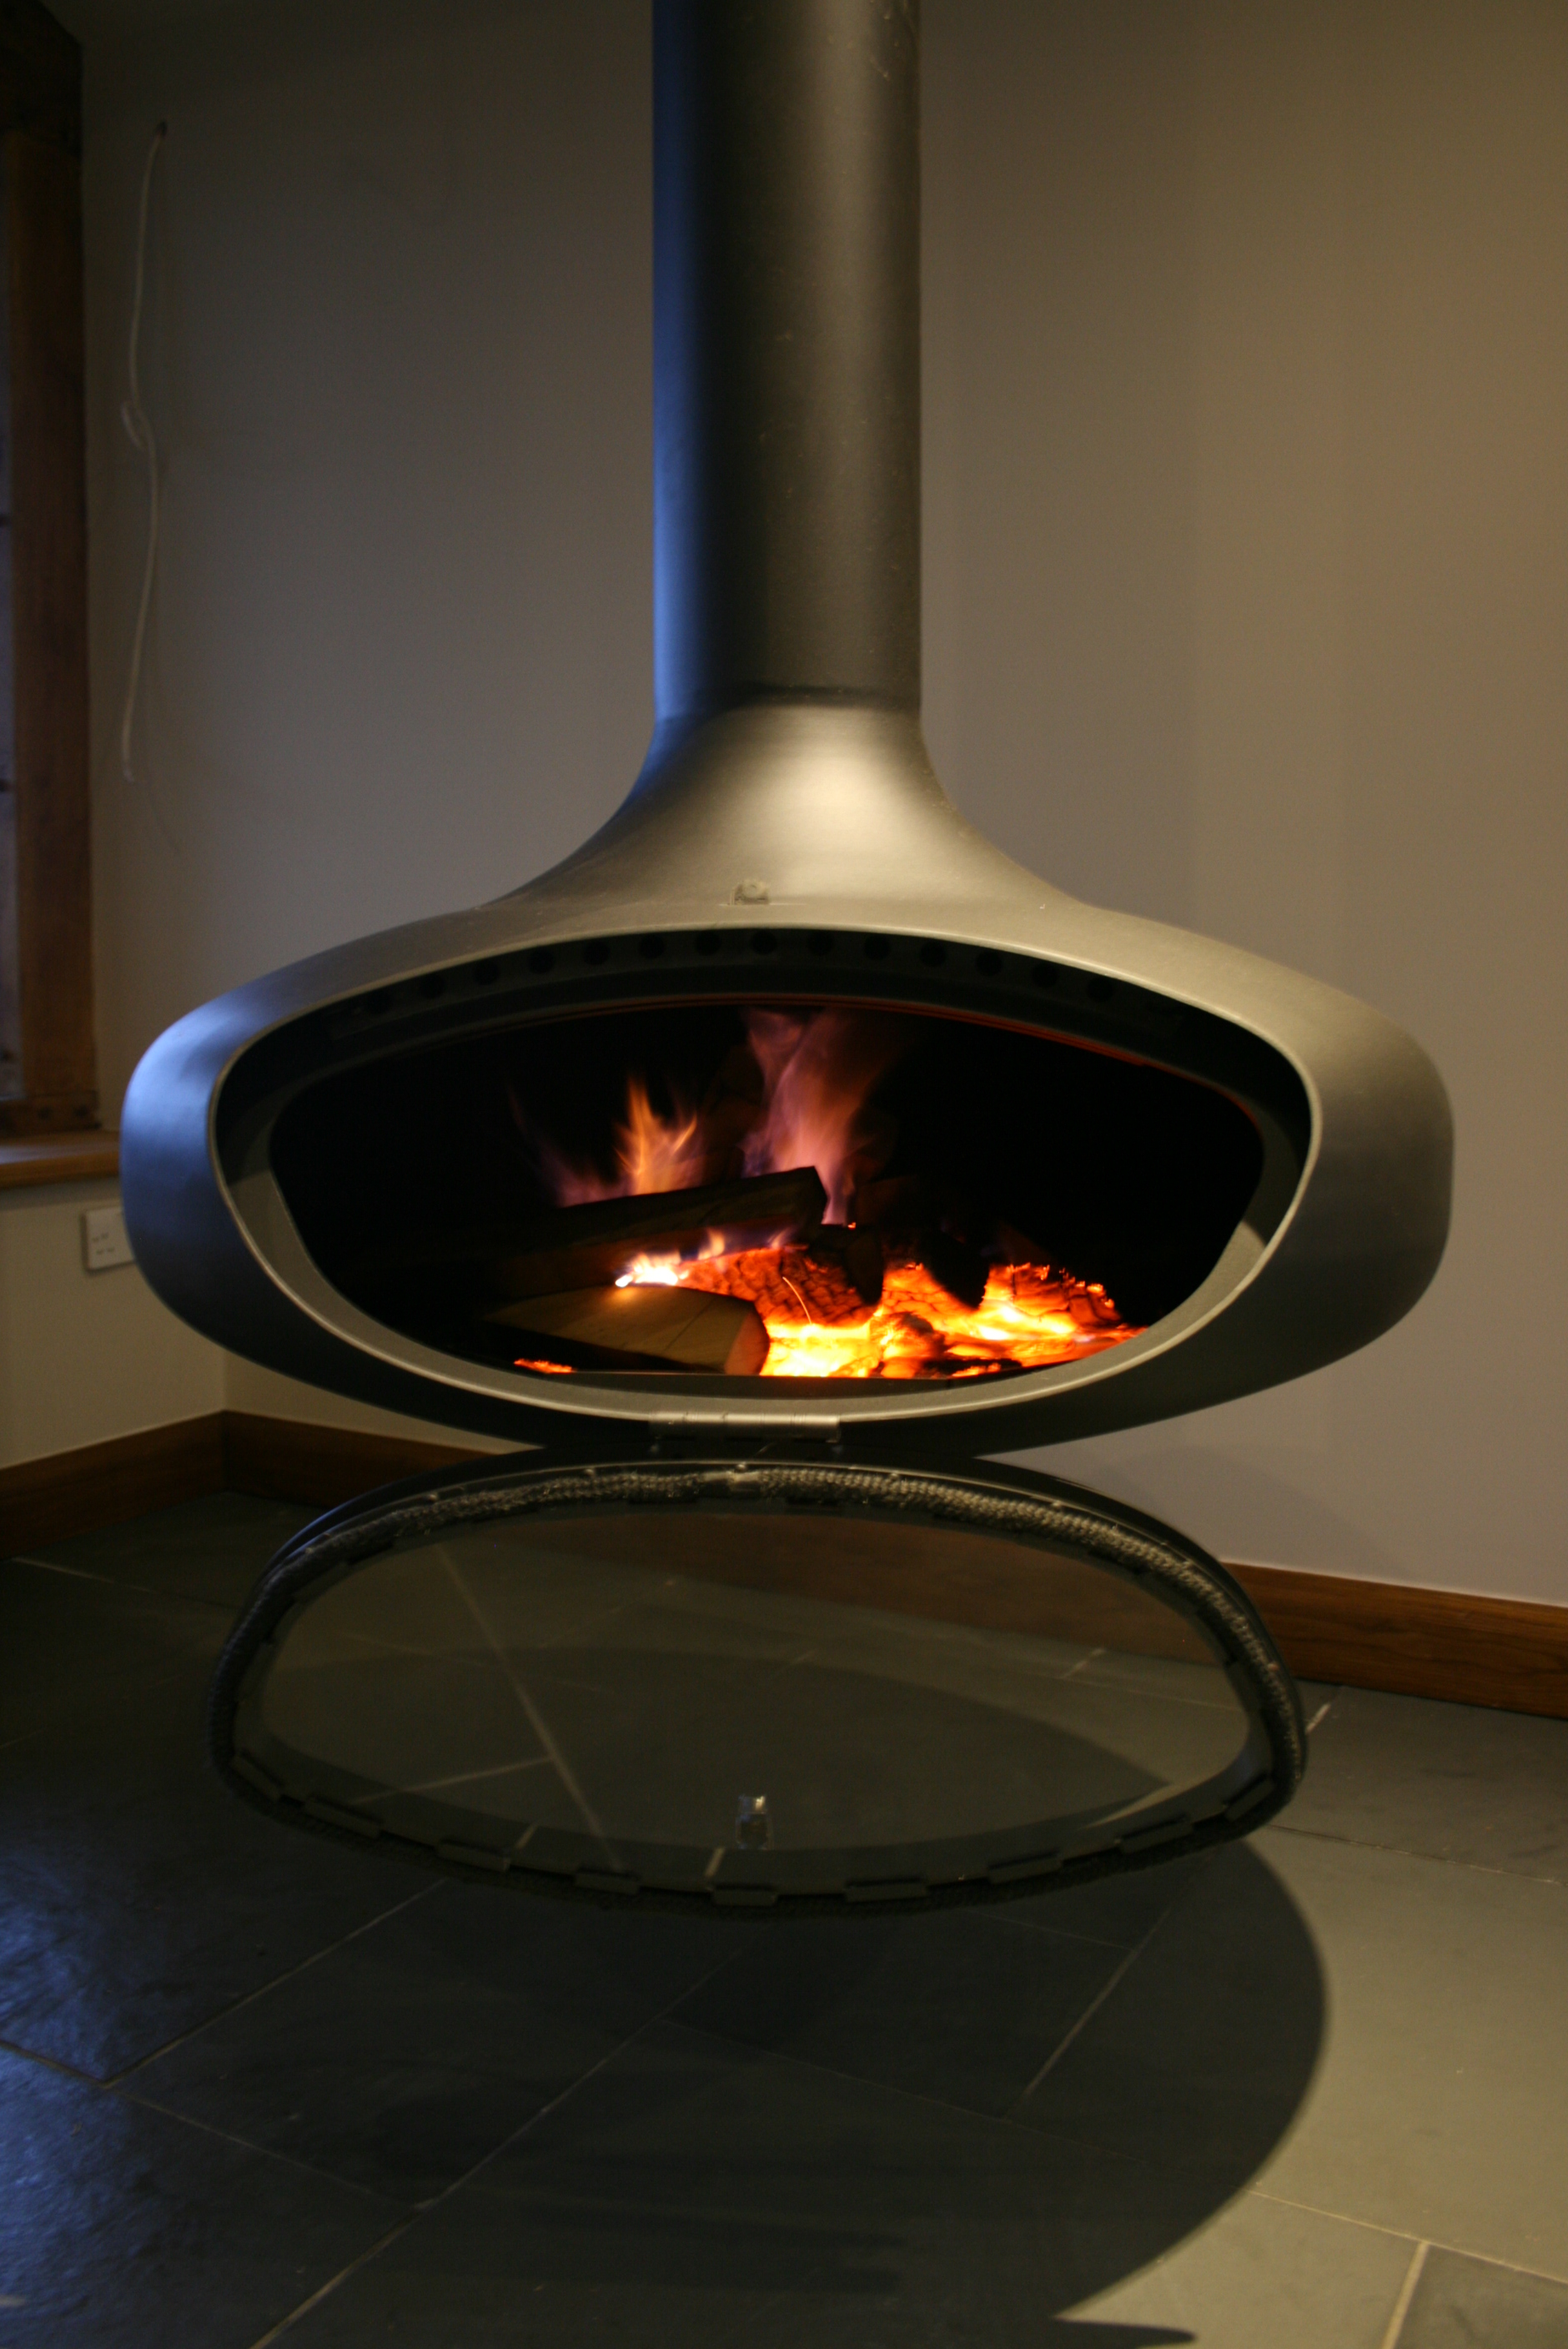 RObert Woods' Firebob suspended stove lit with door open.